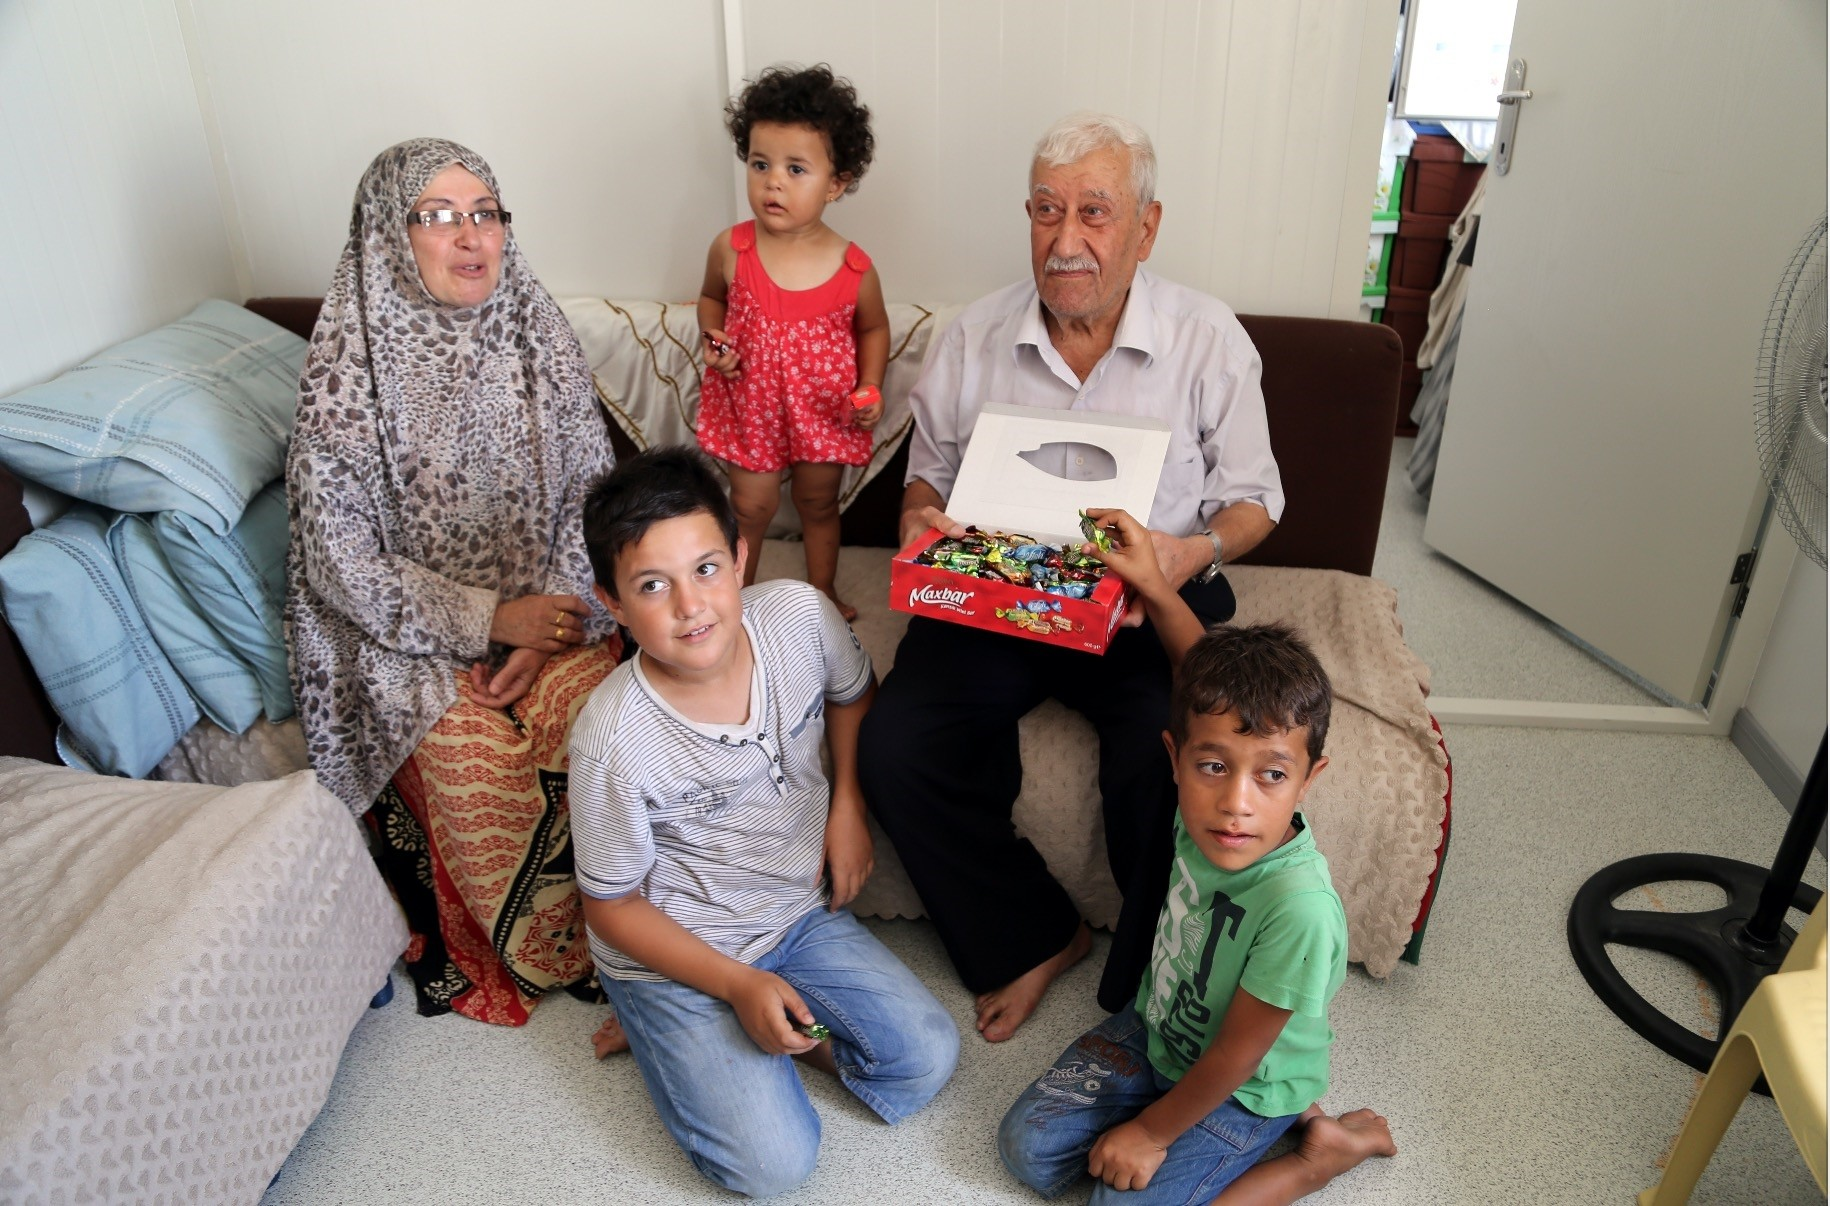 Muhammad Hasan Karrimo and his wife Melek hand out candy to their grandchildren who are among the few relatives they have in Turkey.